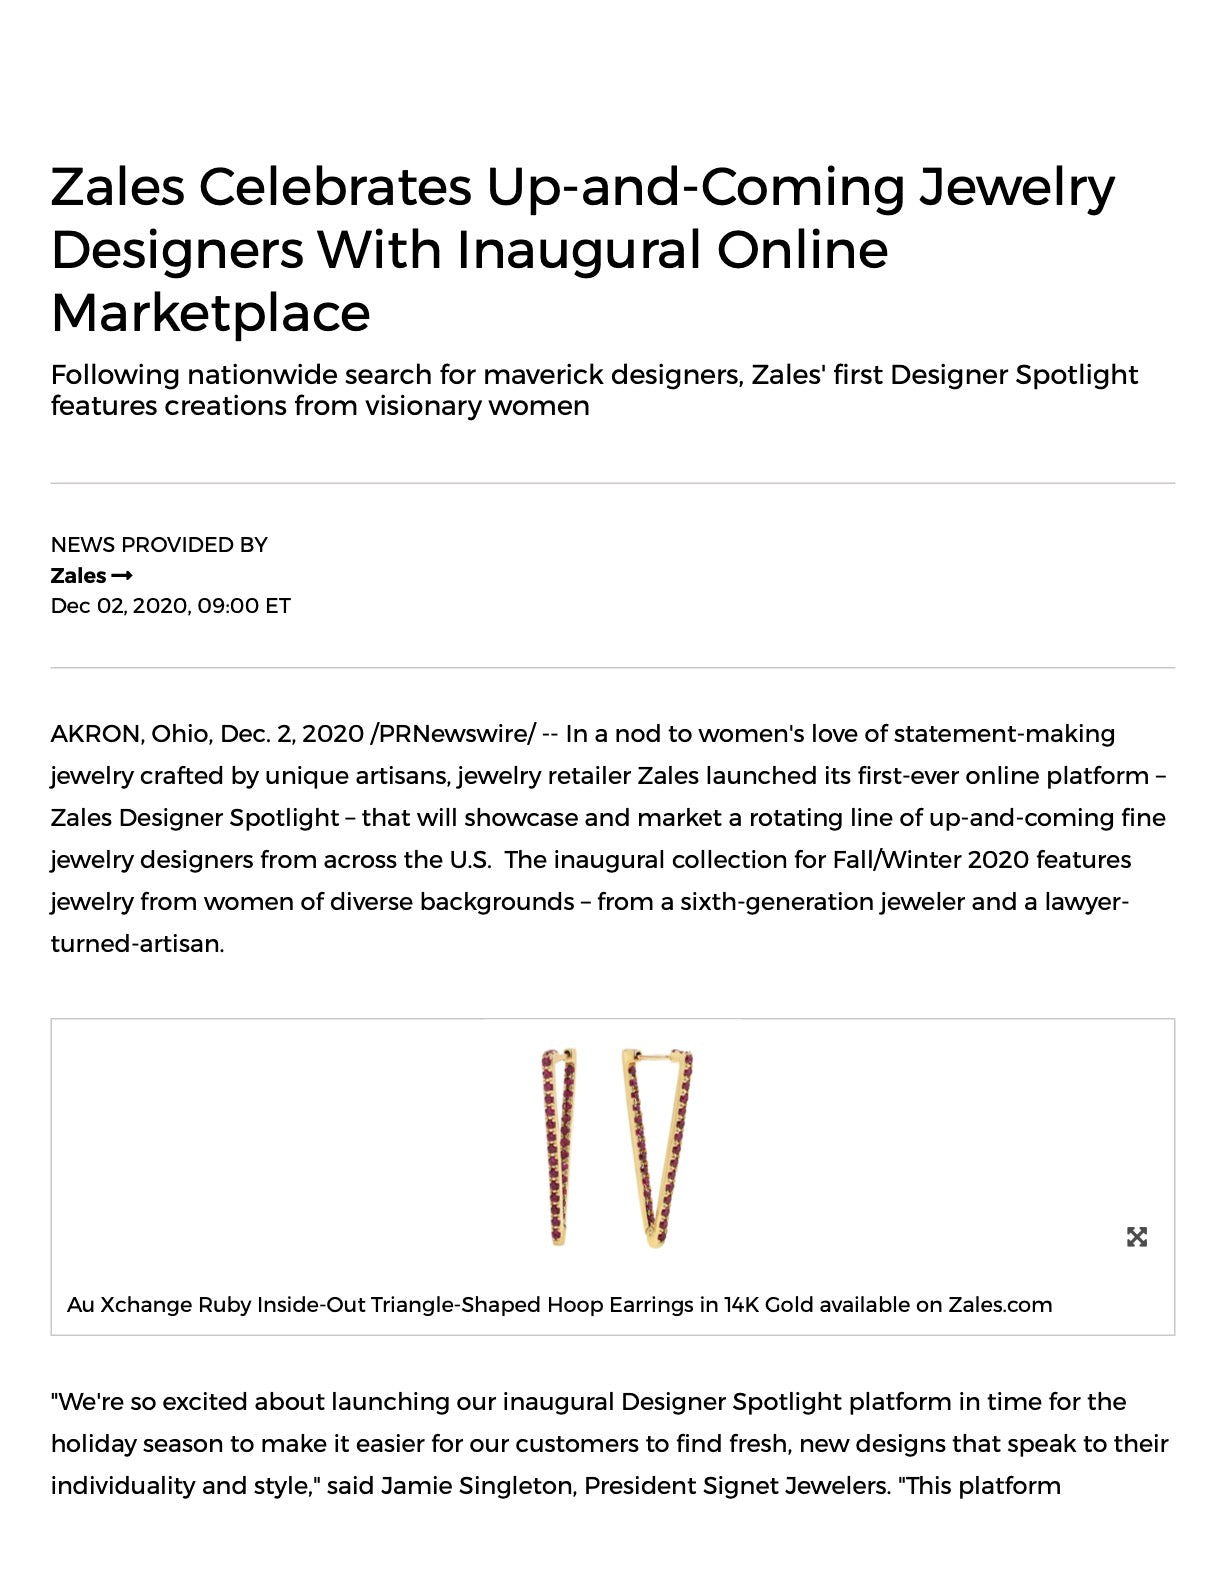 Au Xchange Selected as Up-and-Coming Jewelry Designer